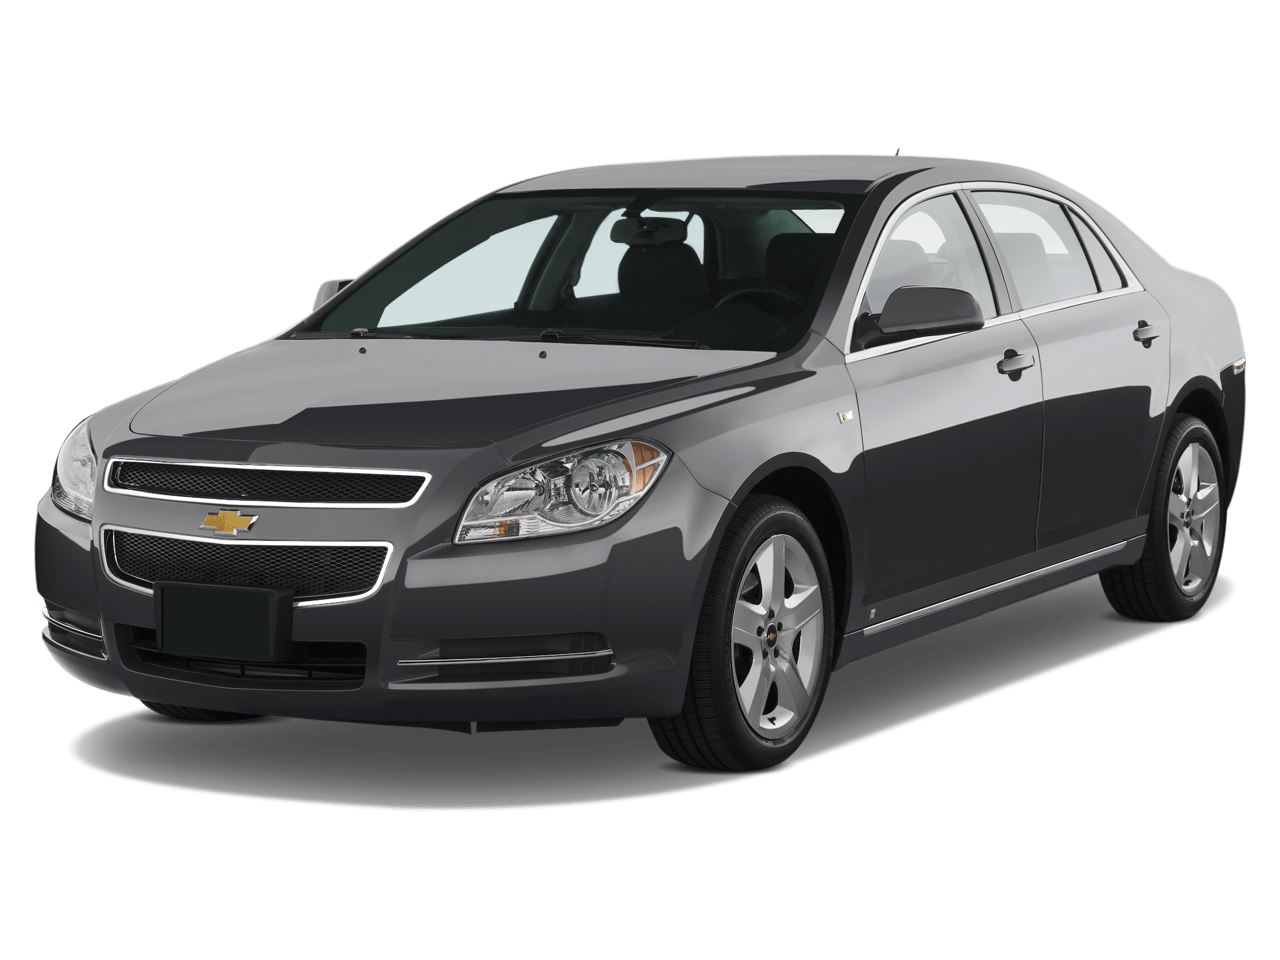 2008 chevy malibu 240 volt well pump wiring diagram chevrolet reviews and rating motor trend